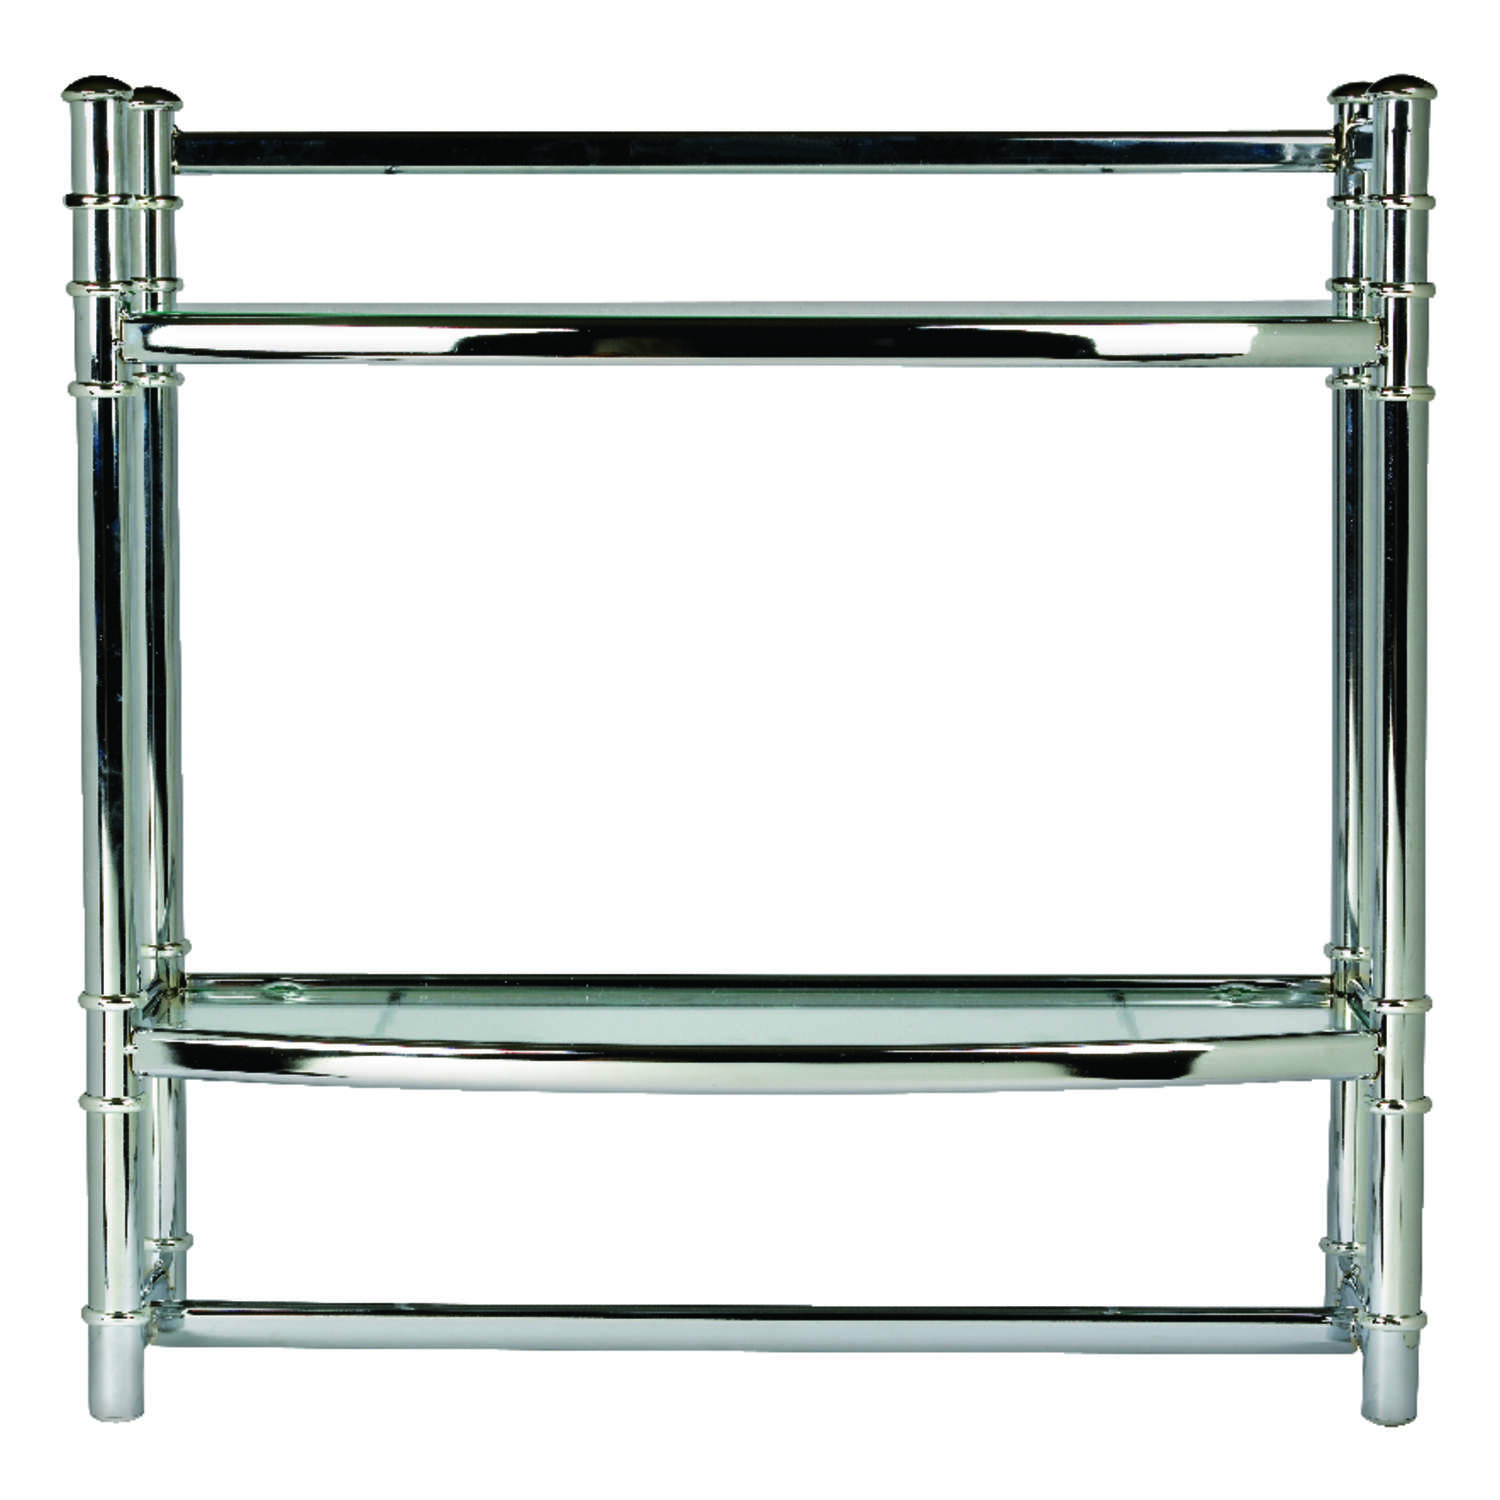 Zenith  Studio Accents  20.75 in. H x 21 in. W x 9.25 in. D Steel  Wall Mount Shelf